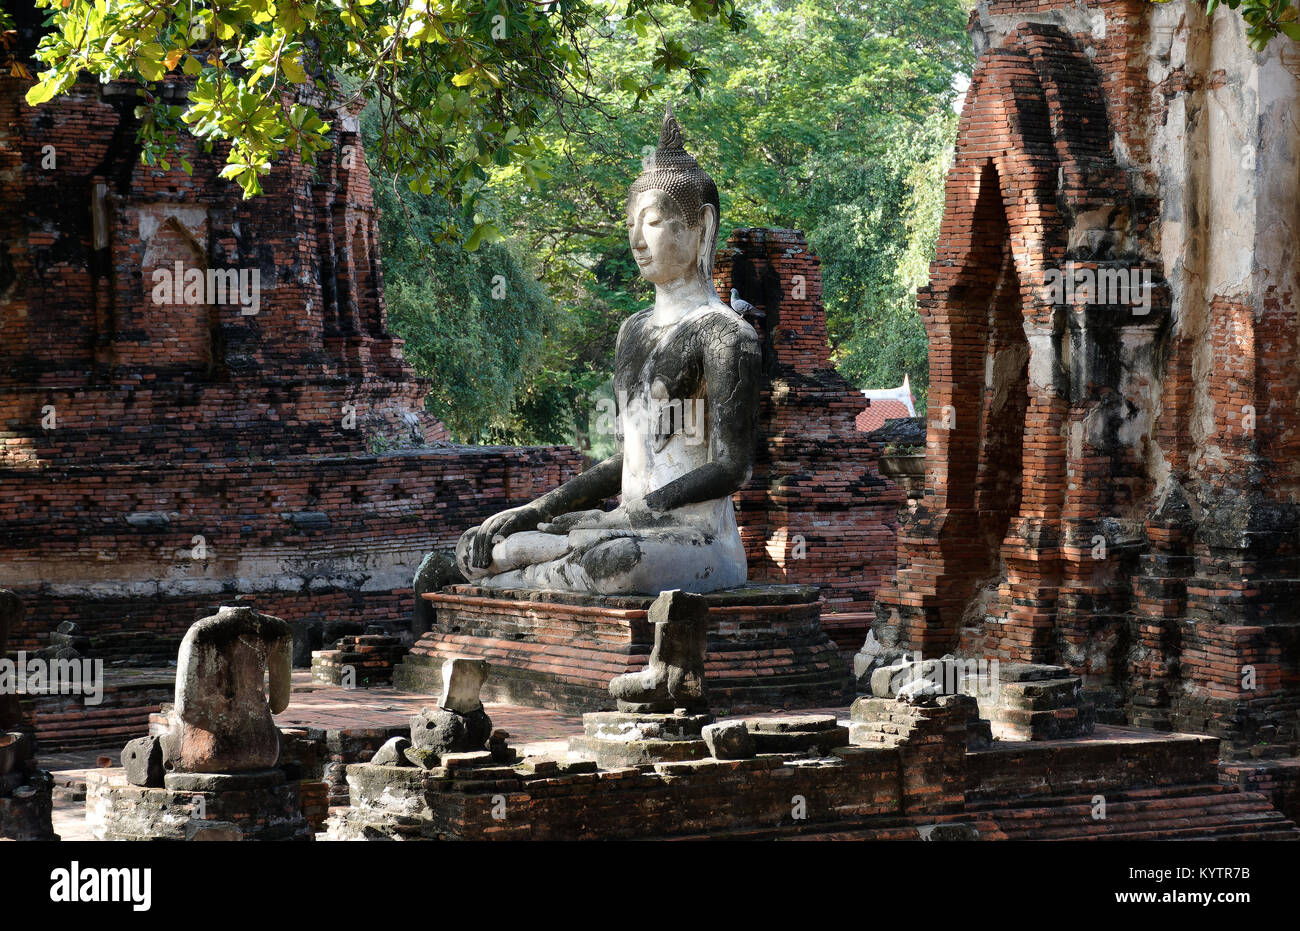 The buddha statue in meditation posture with the sunlight emitting from the sky to illustrate a look of wise, calm, - Stock Image